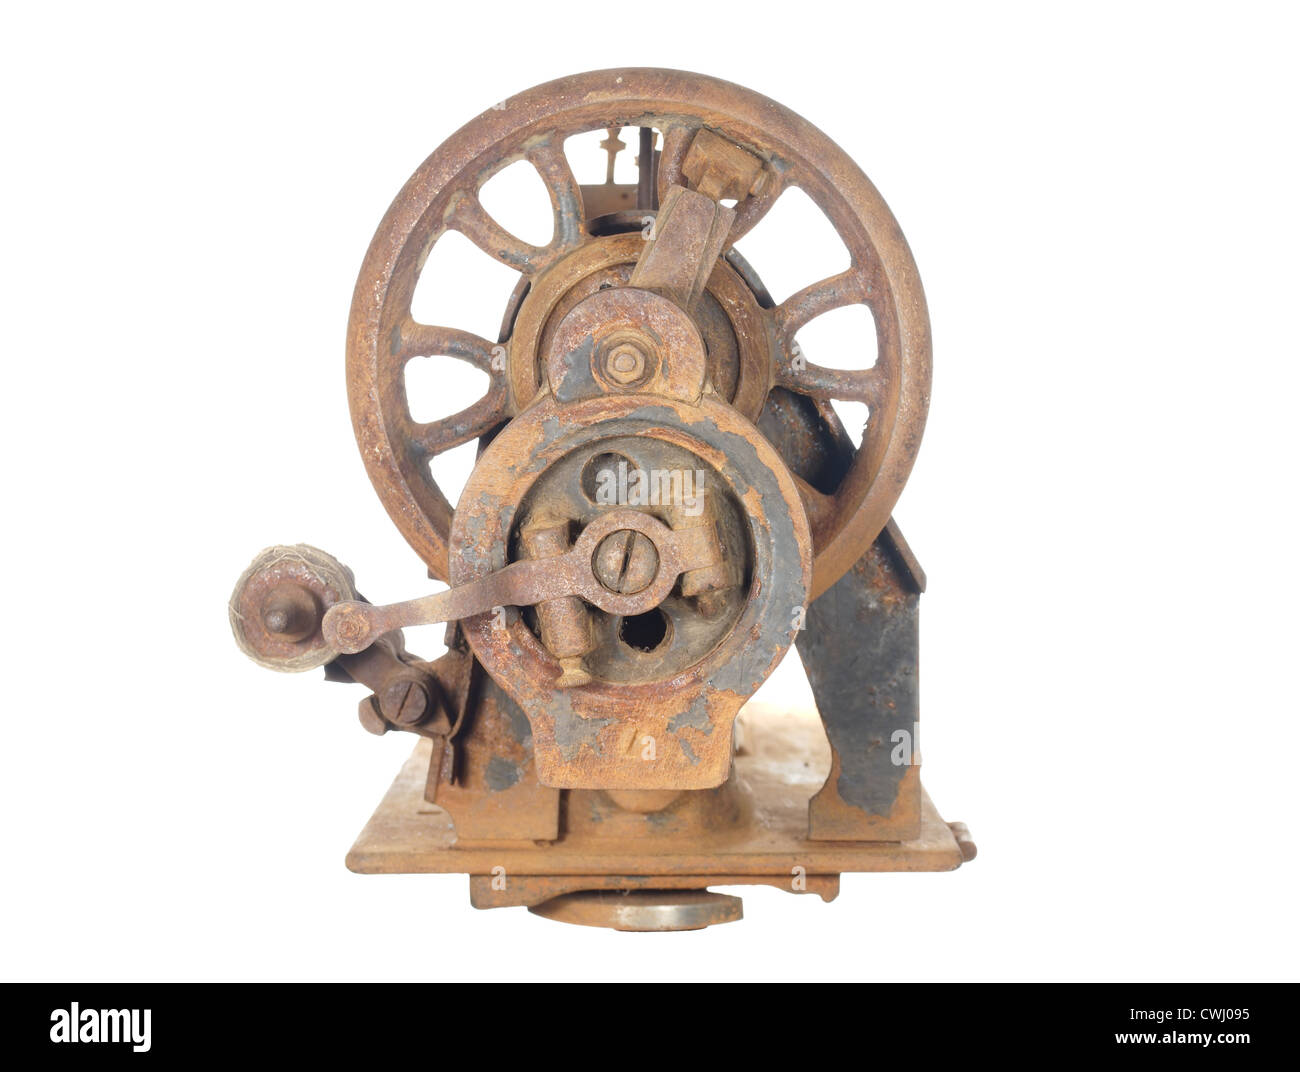 Rusty skeleton of an ancient sewing machine, isolated on white background. - Stock Image